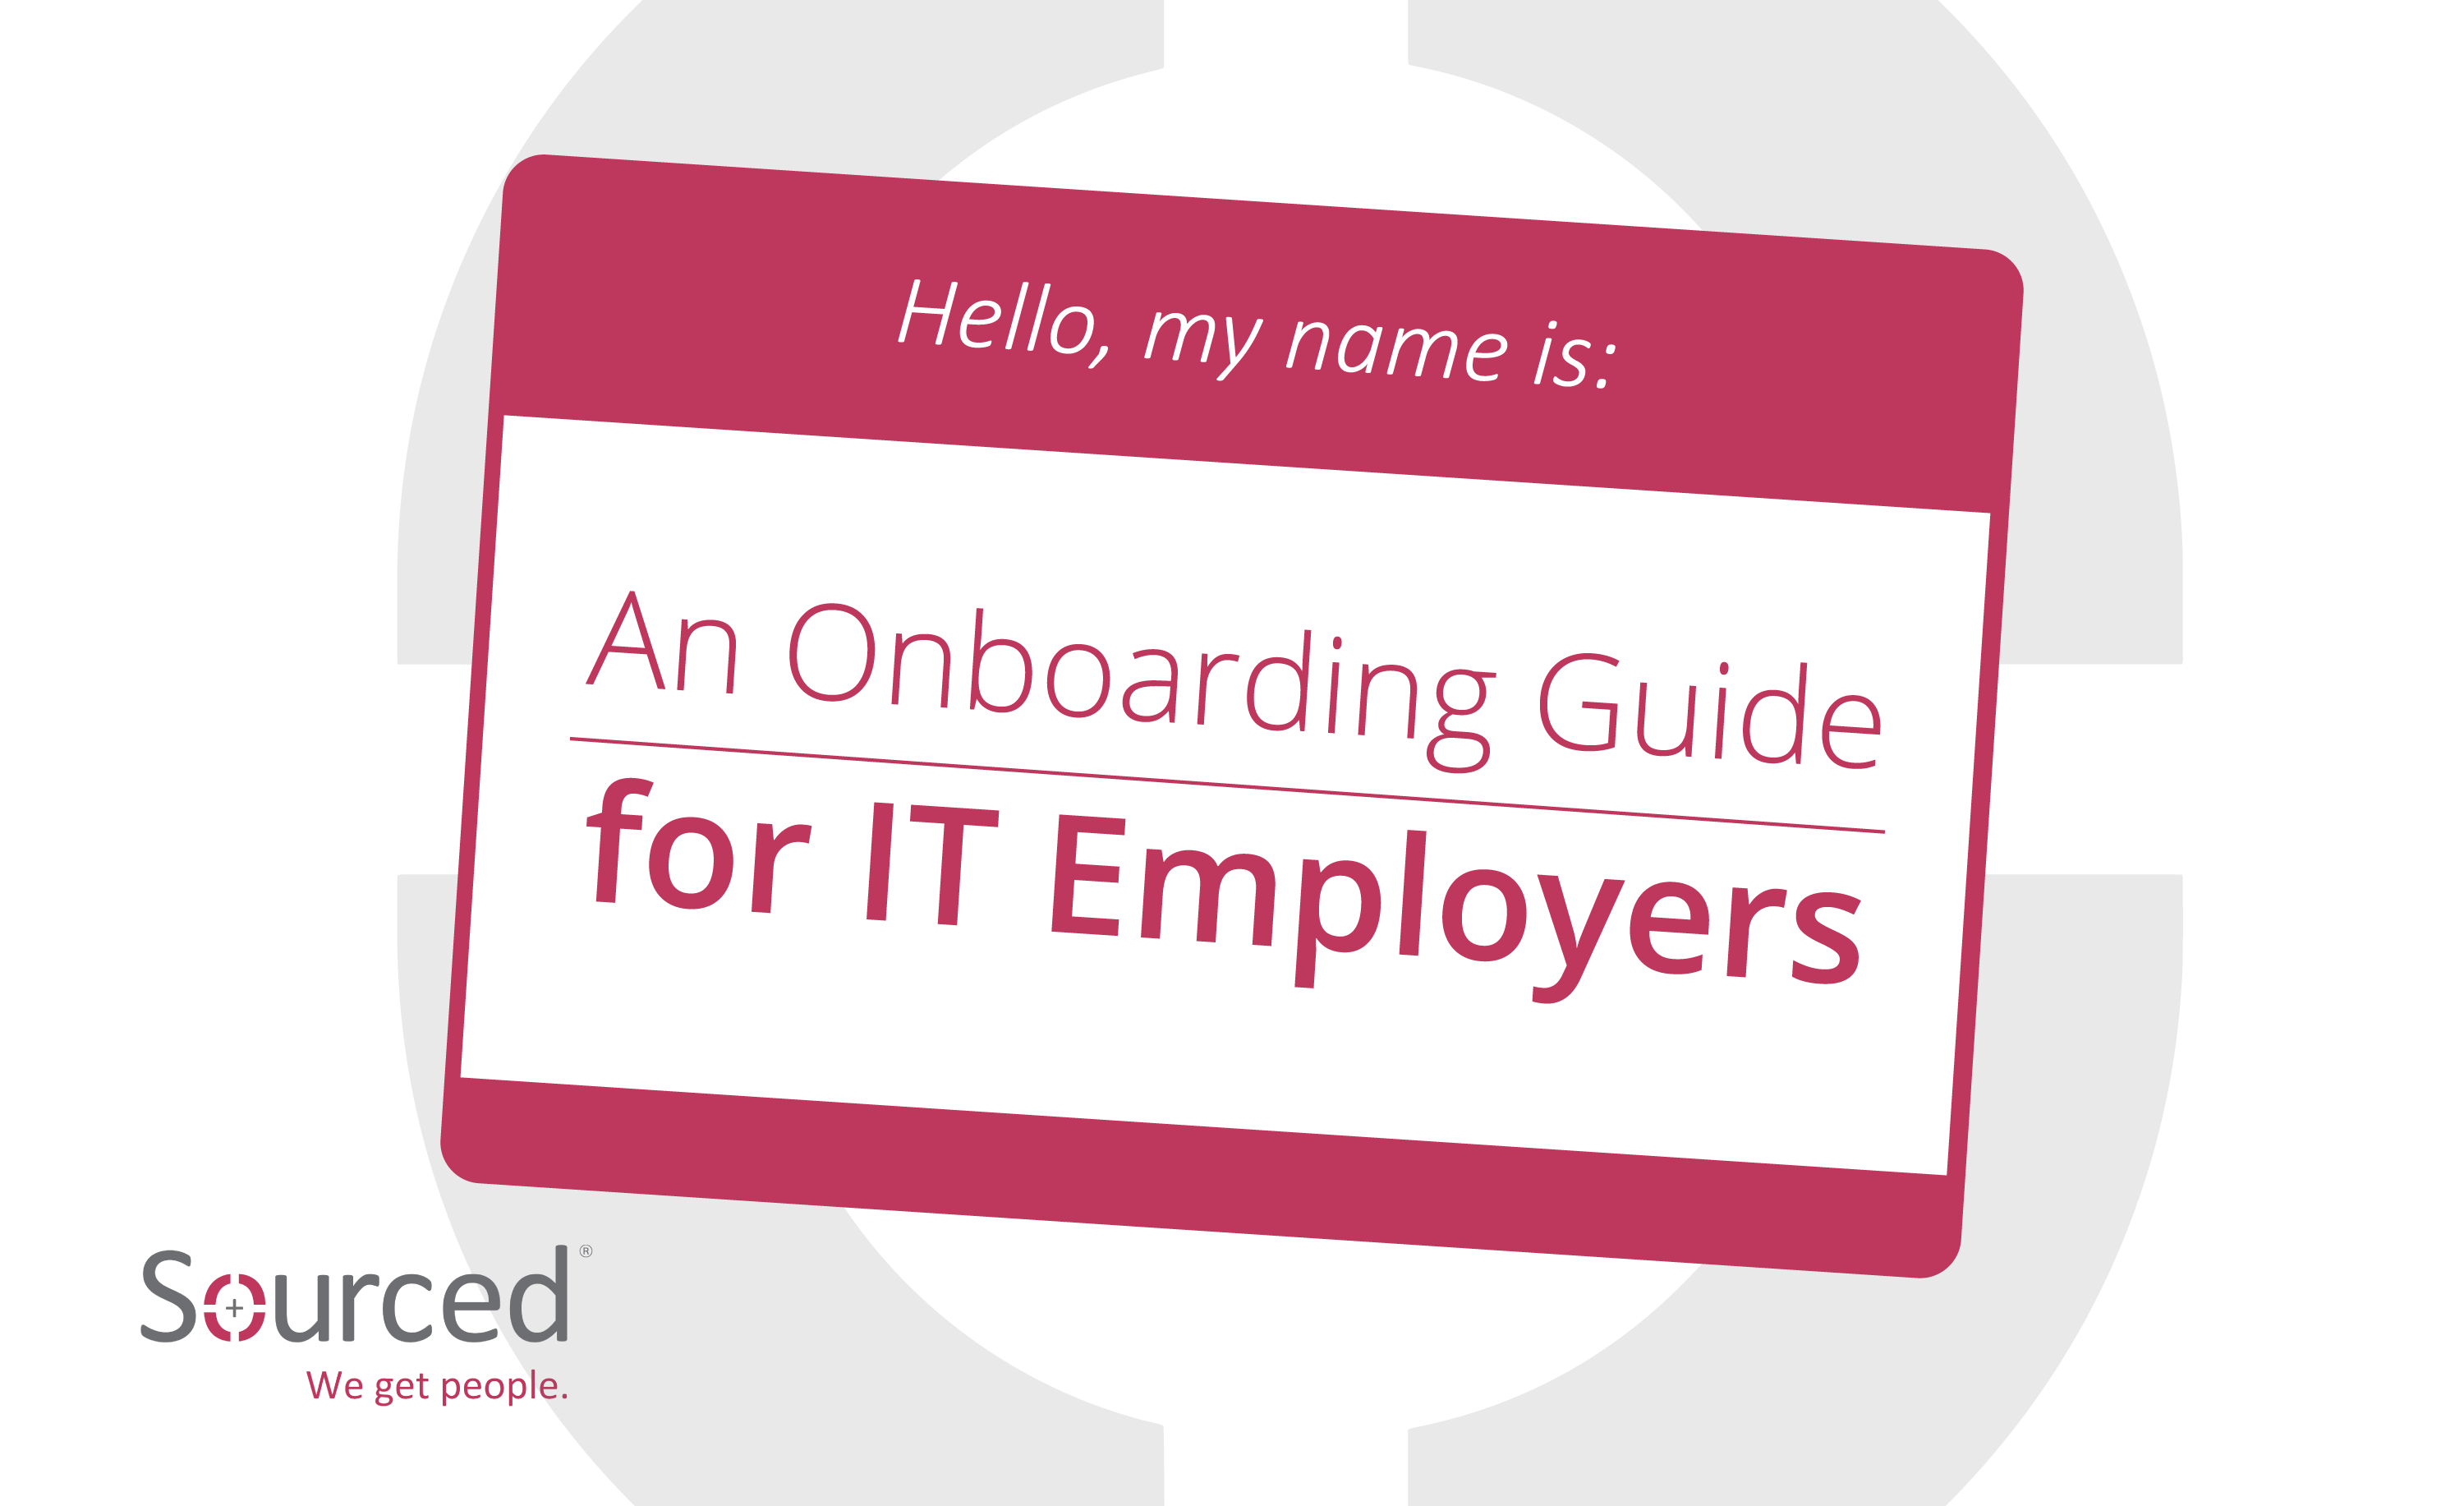 Onboarding Guide| Sourced: Christchurch IT Recruitment